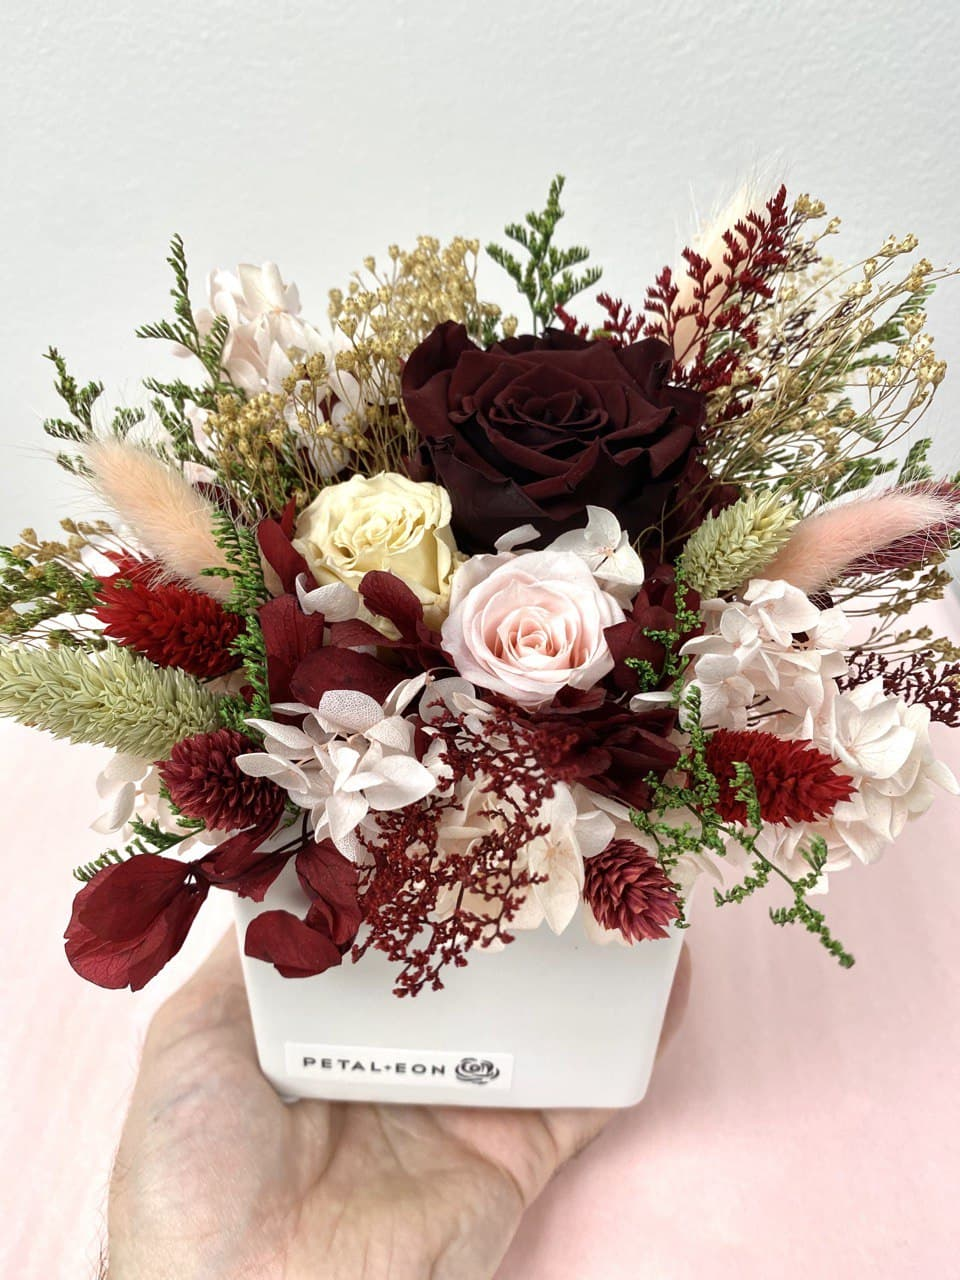 Women's Day Virtual Floral Workshop - May 1st, 2021 at 1pm CST